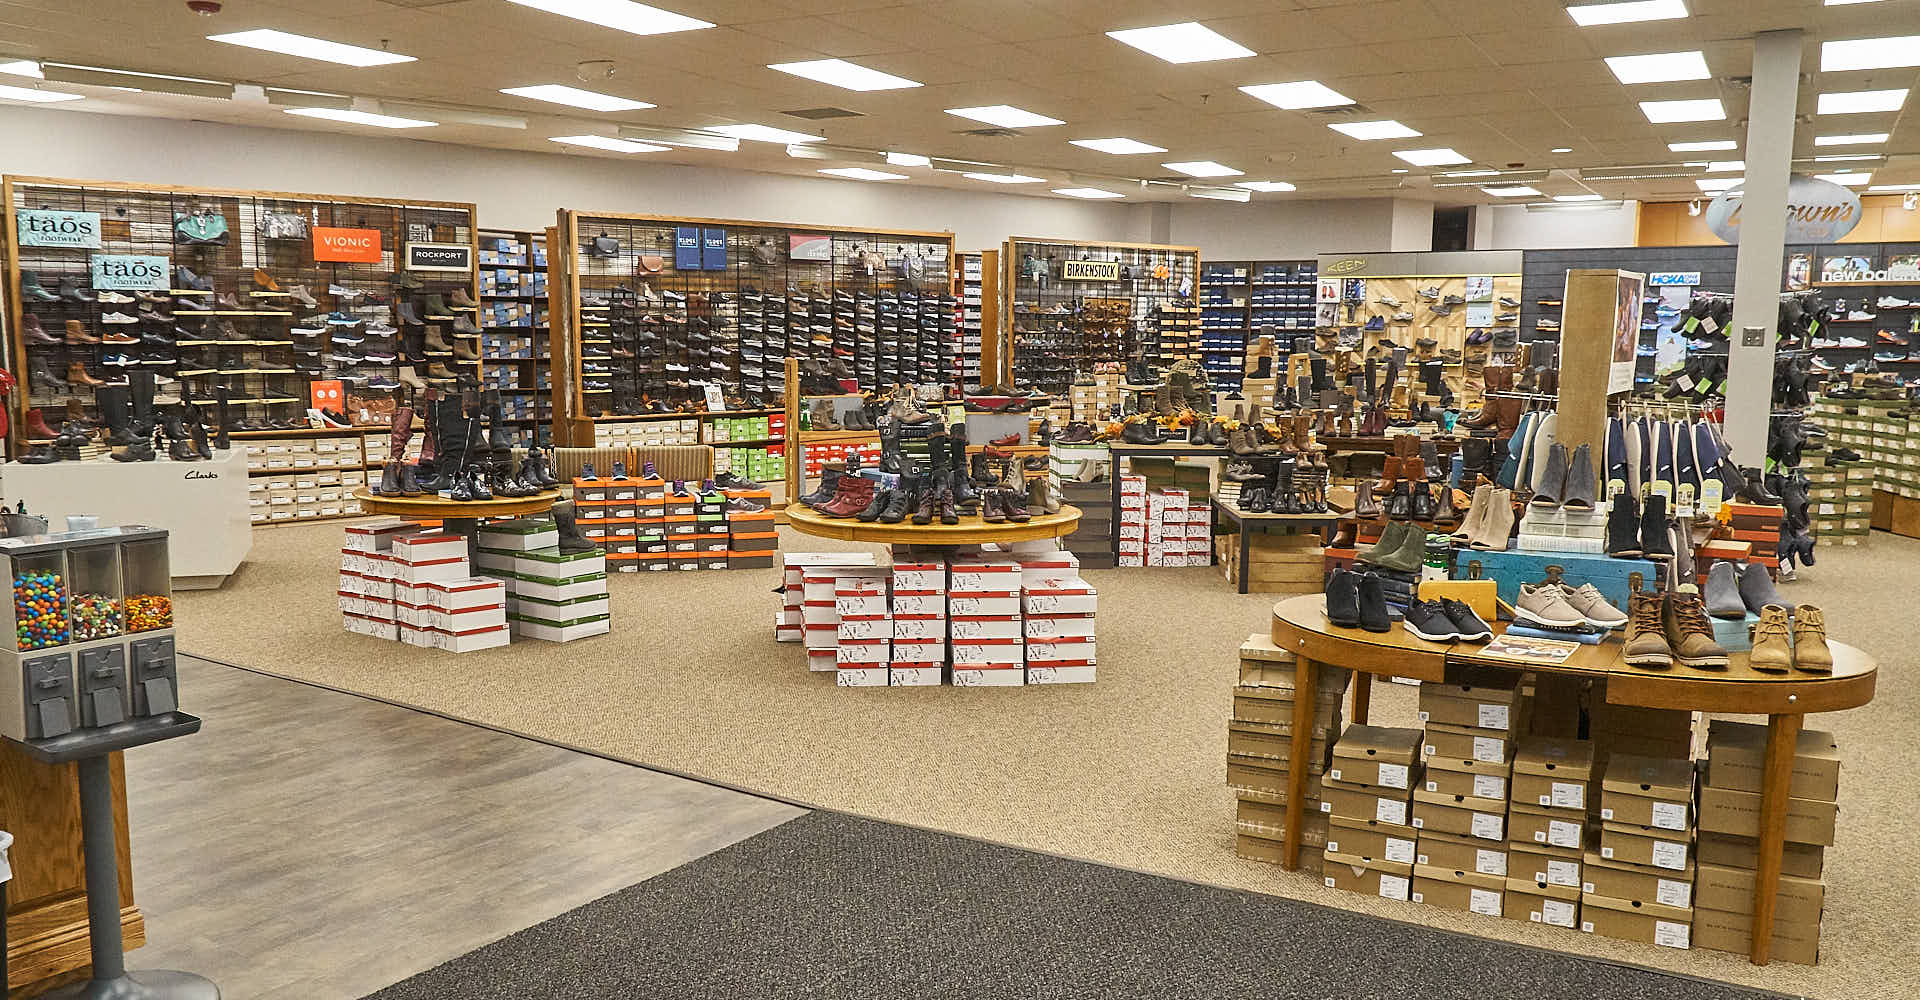 Cheyenne store interior photo